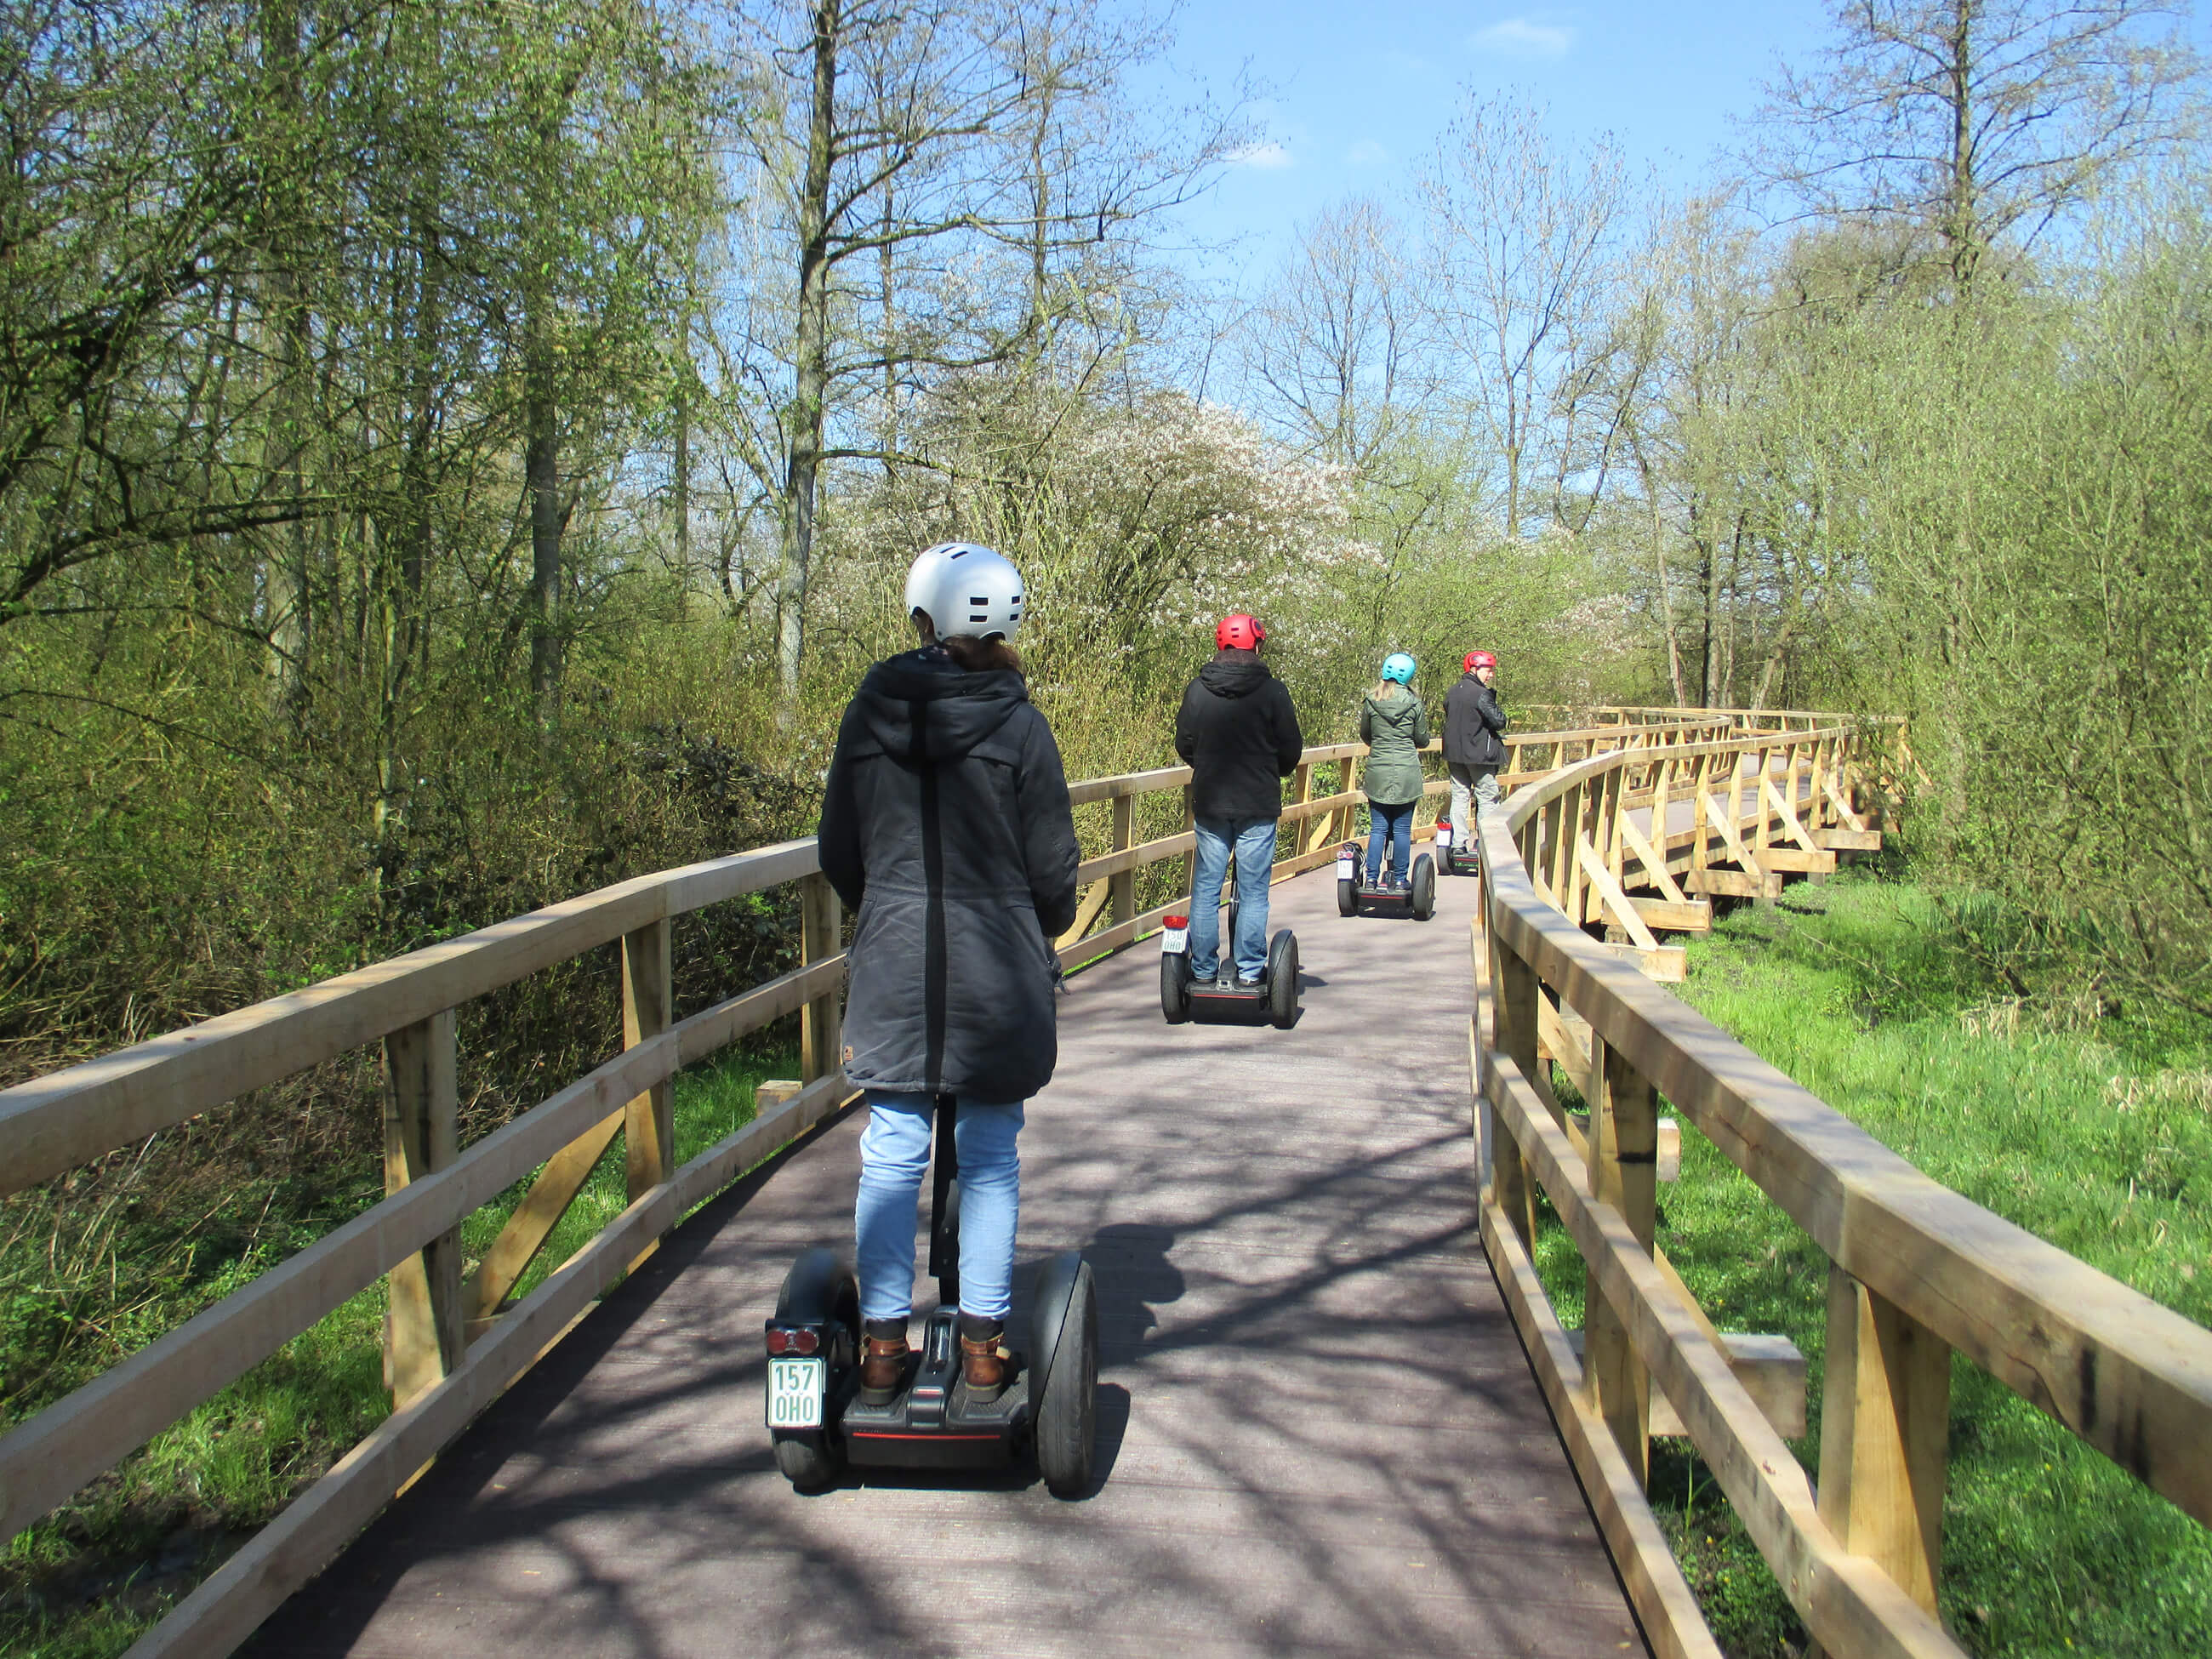 Segway-Touren in Bad Zwischenahn